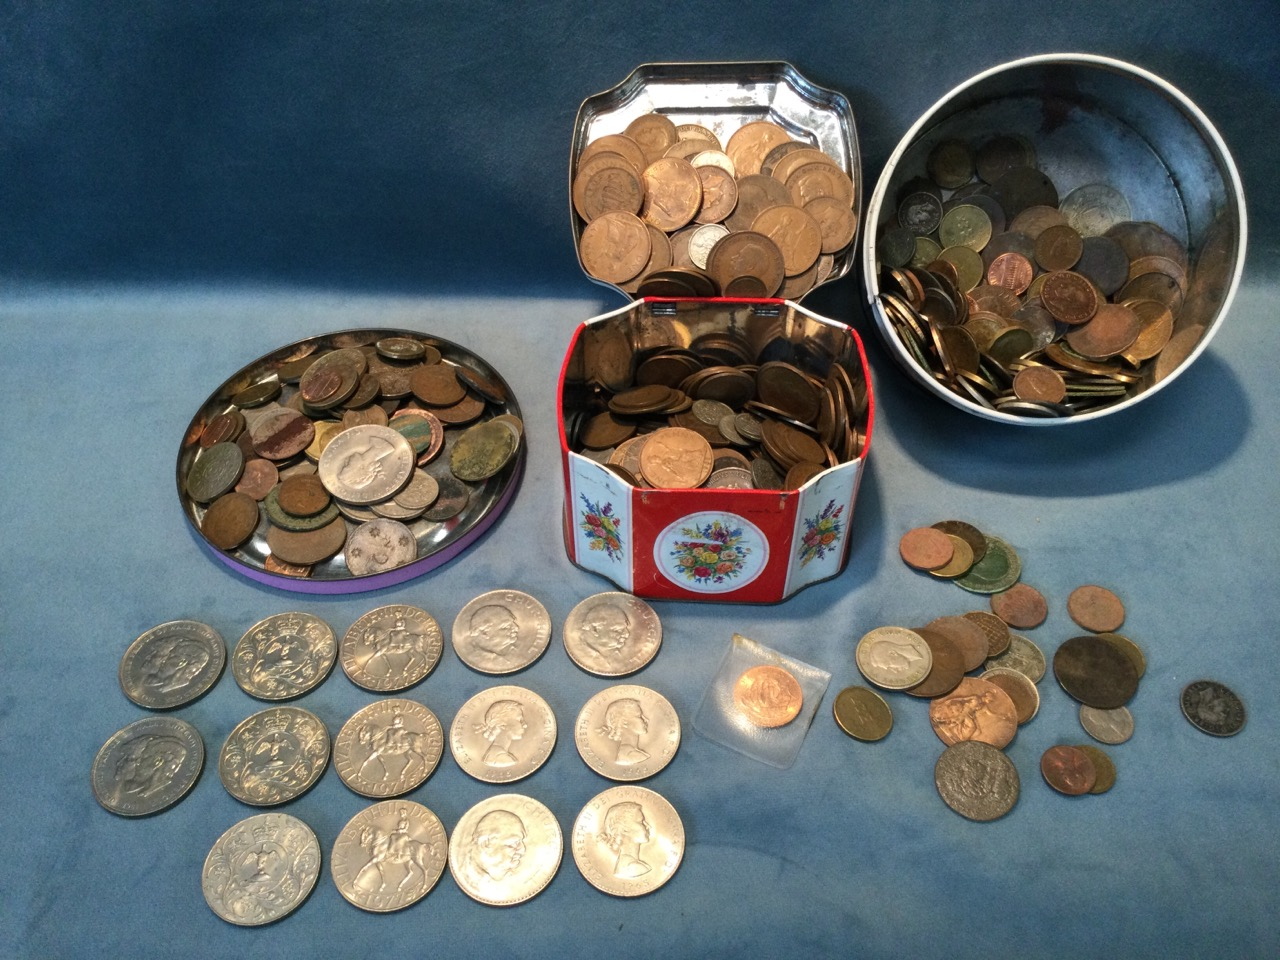 Two tins of miscellaneous coins - pennies, coins, halfpennies, crowns, threepenny bits, sixpences,